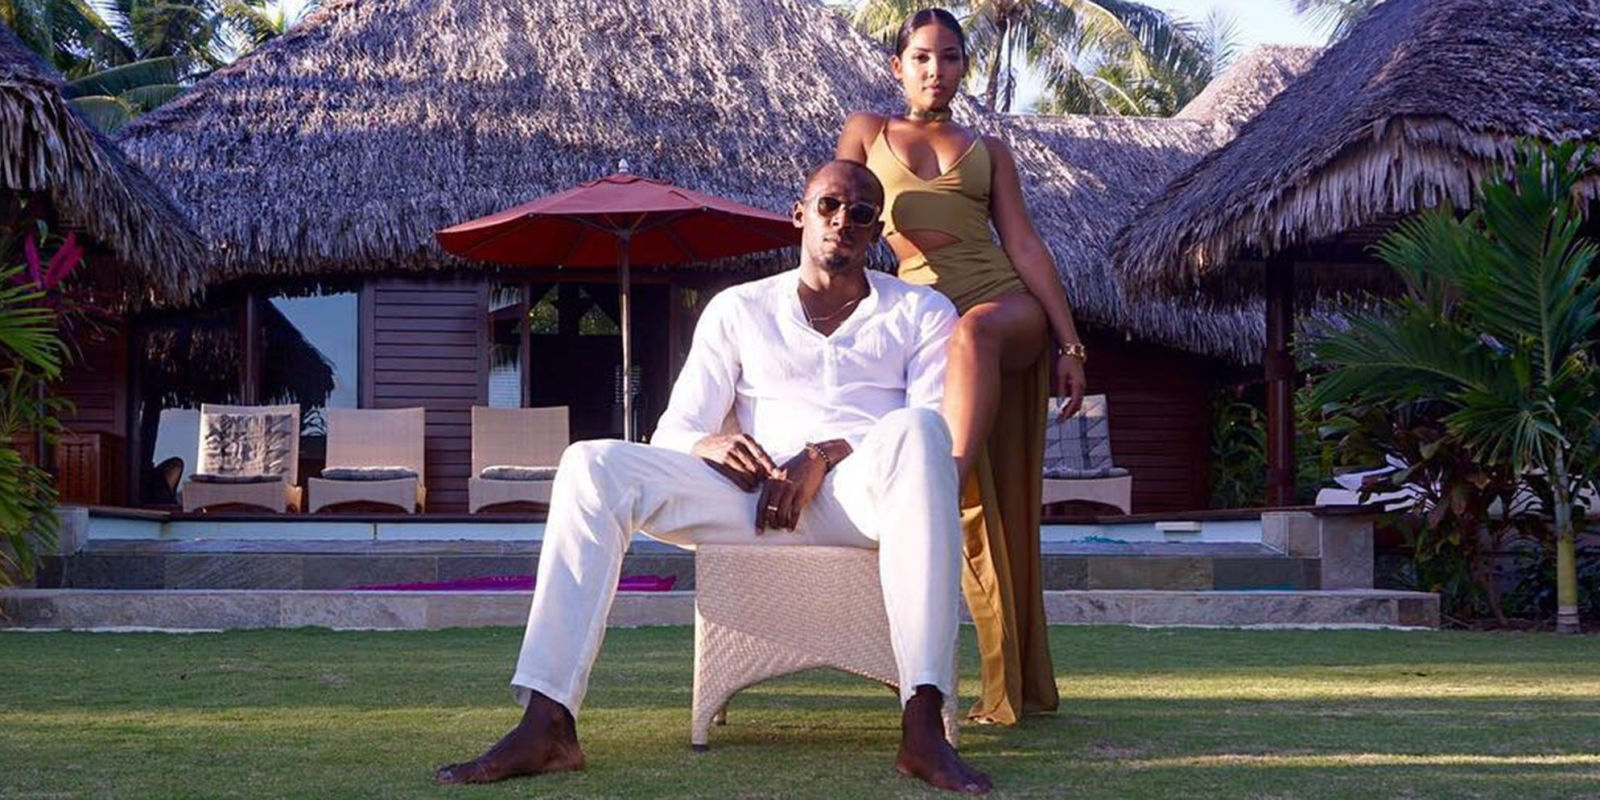 Usain Bolt with his girlfriend, Kasi J. Bennett